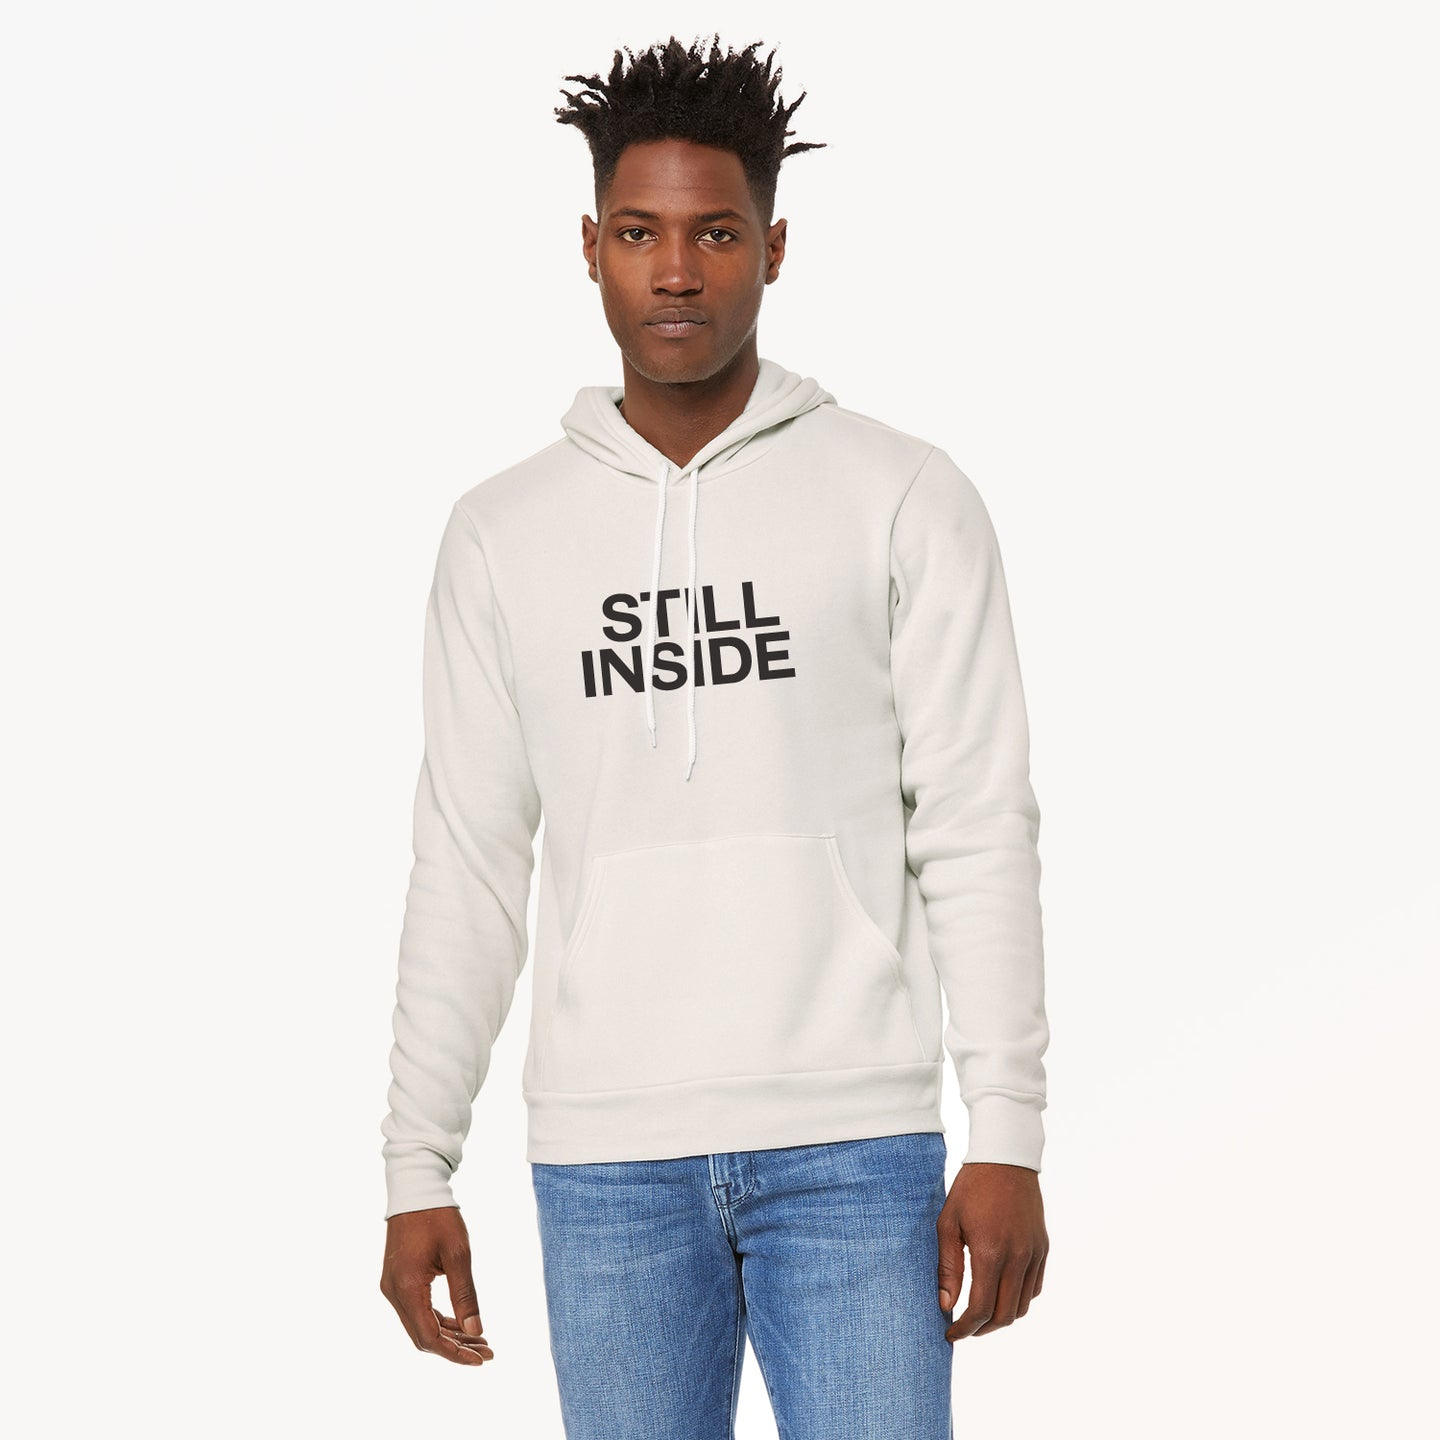 Still Inside graphic screenprinted on a comfy vintage white unisex pullover hooded sweatshirt.